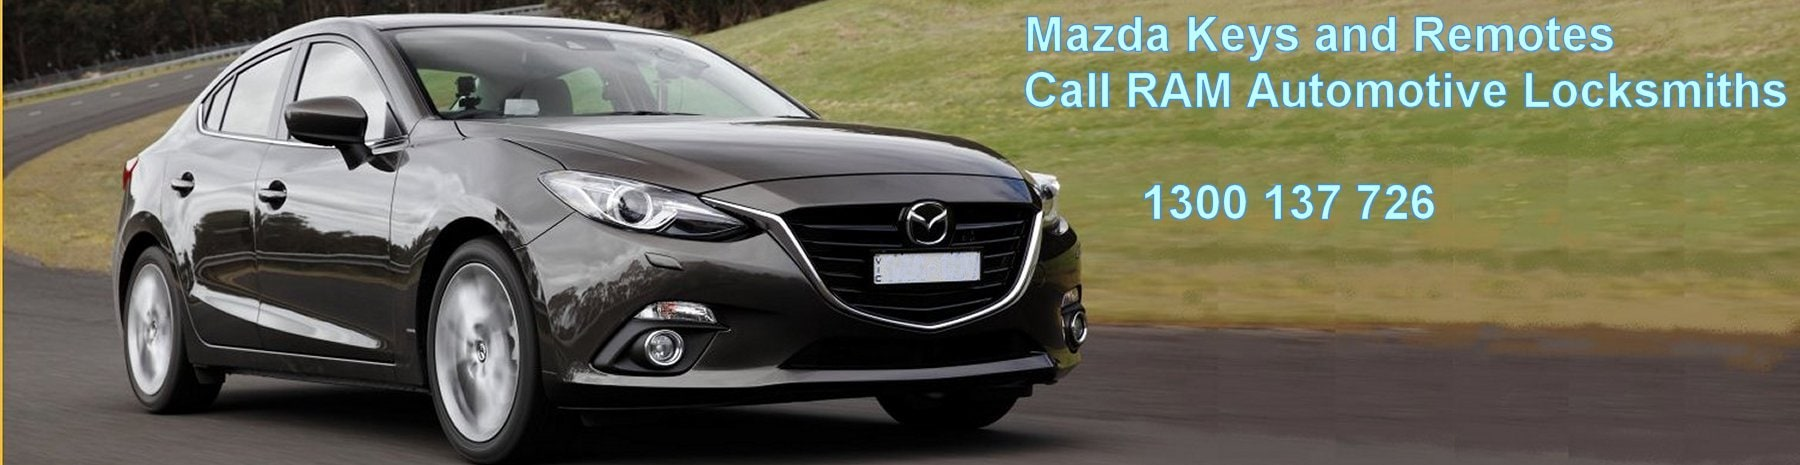 Mazda-plus-text-1800x465-new